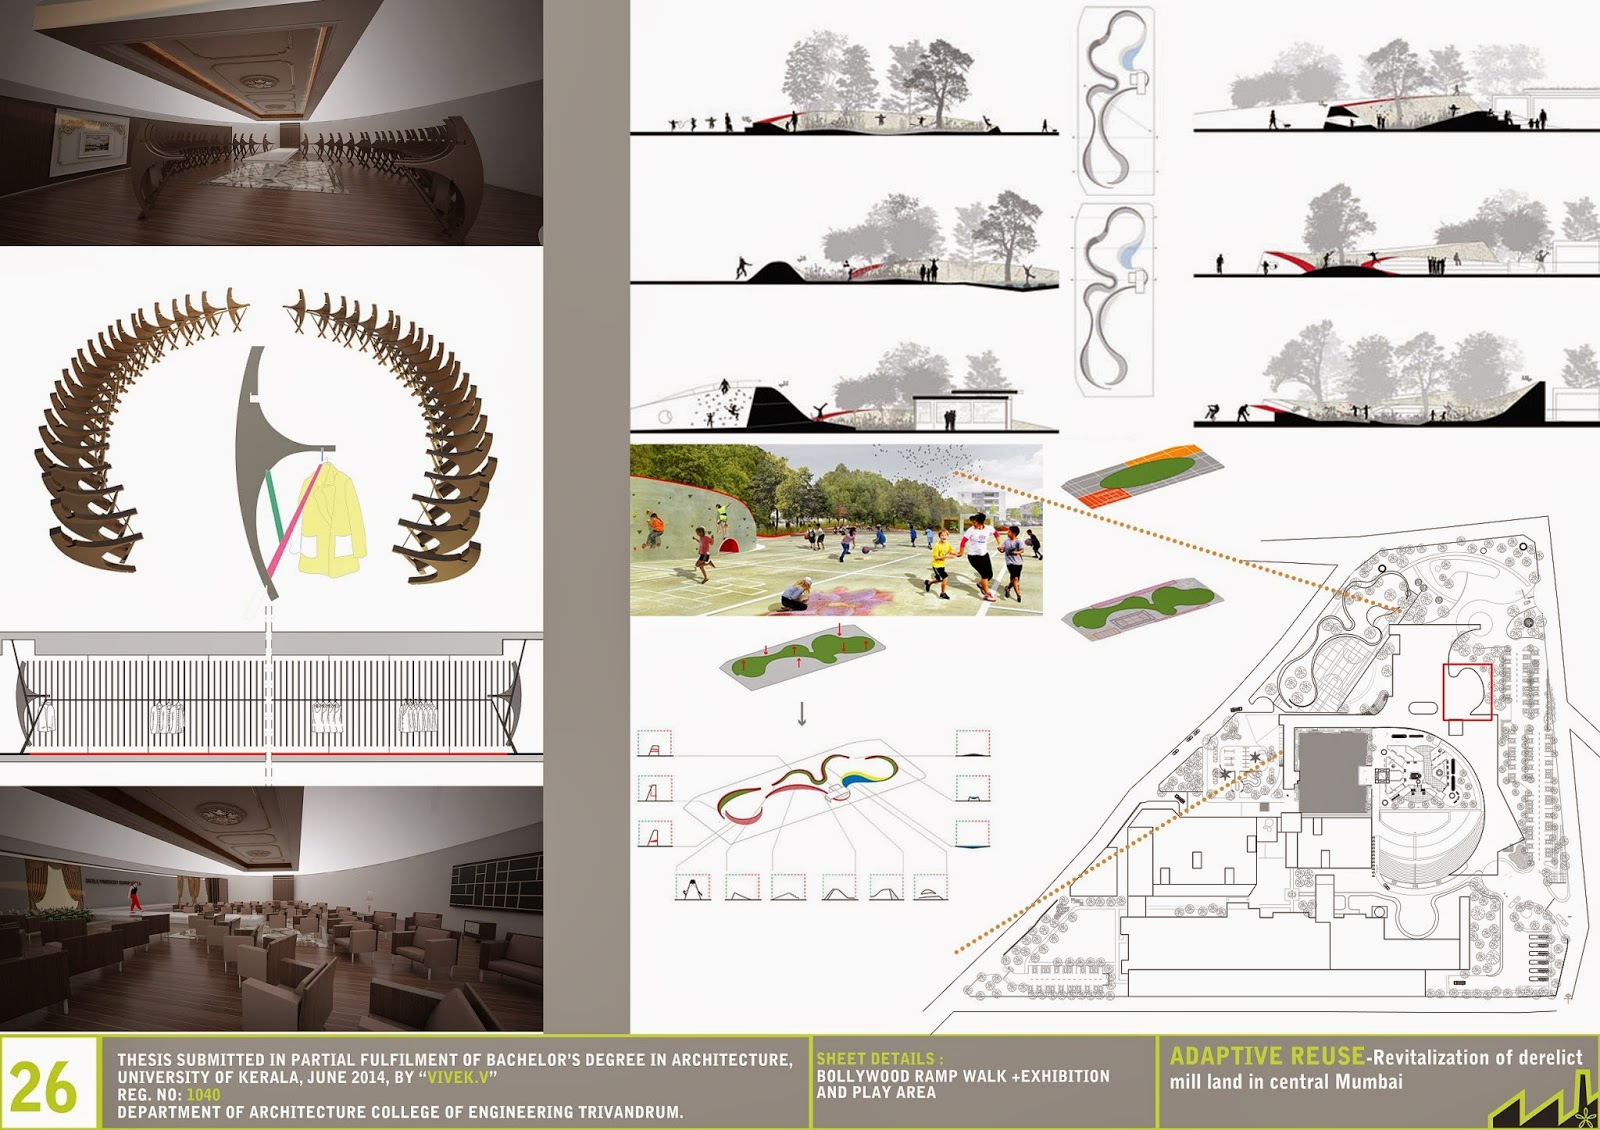 Adaptive reuse architecture thesis